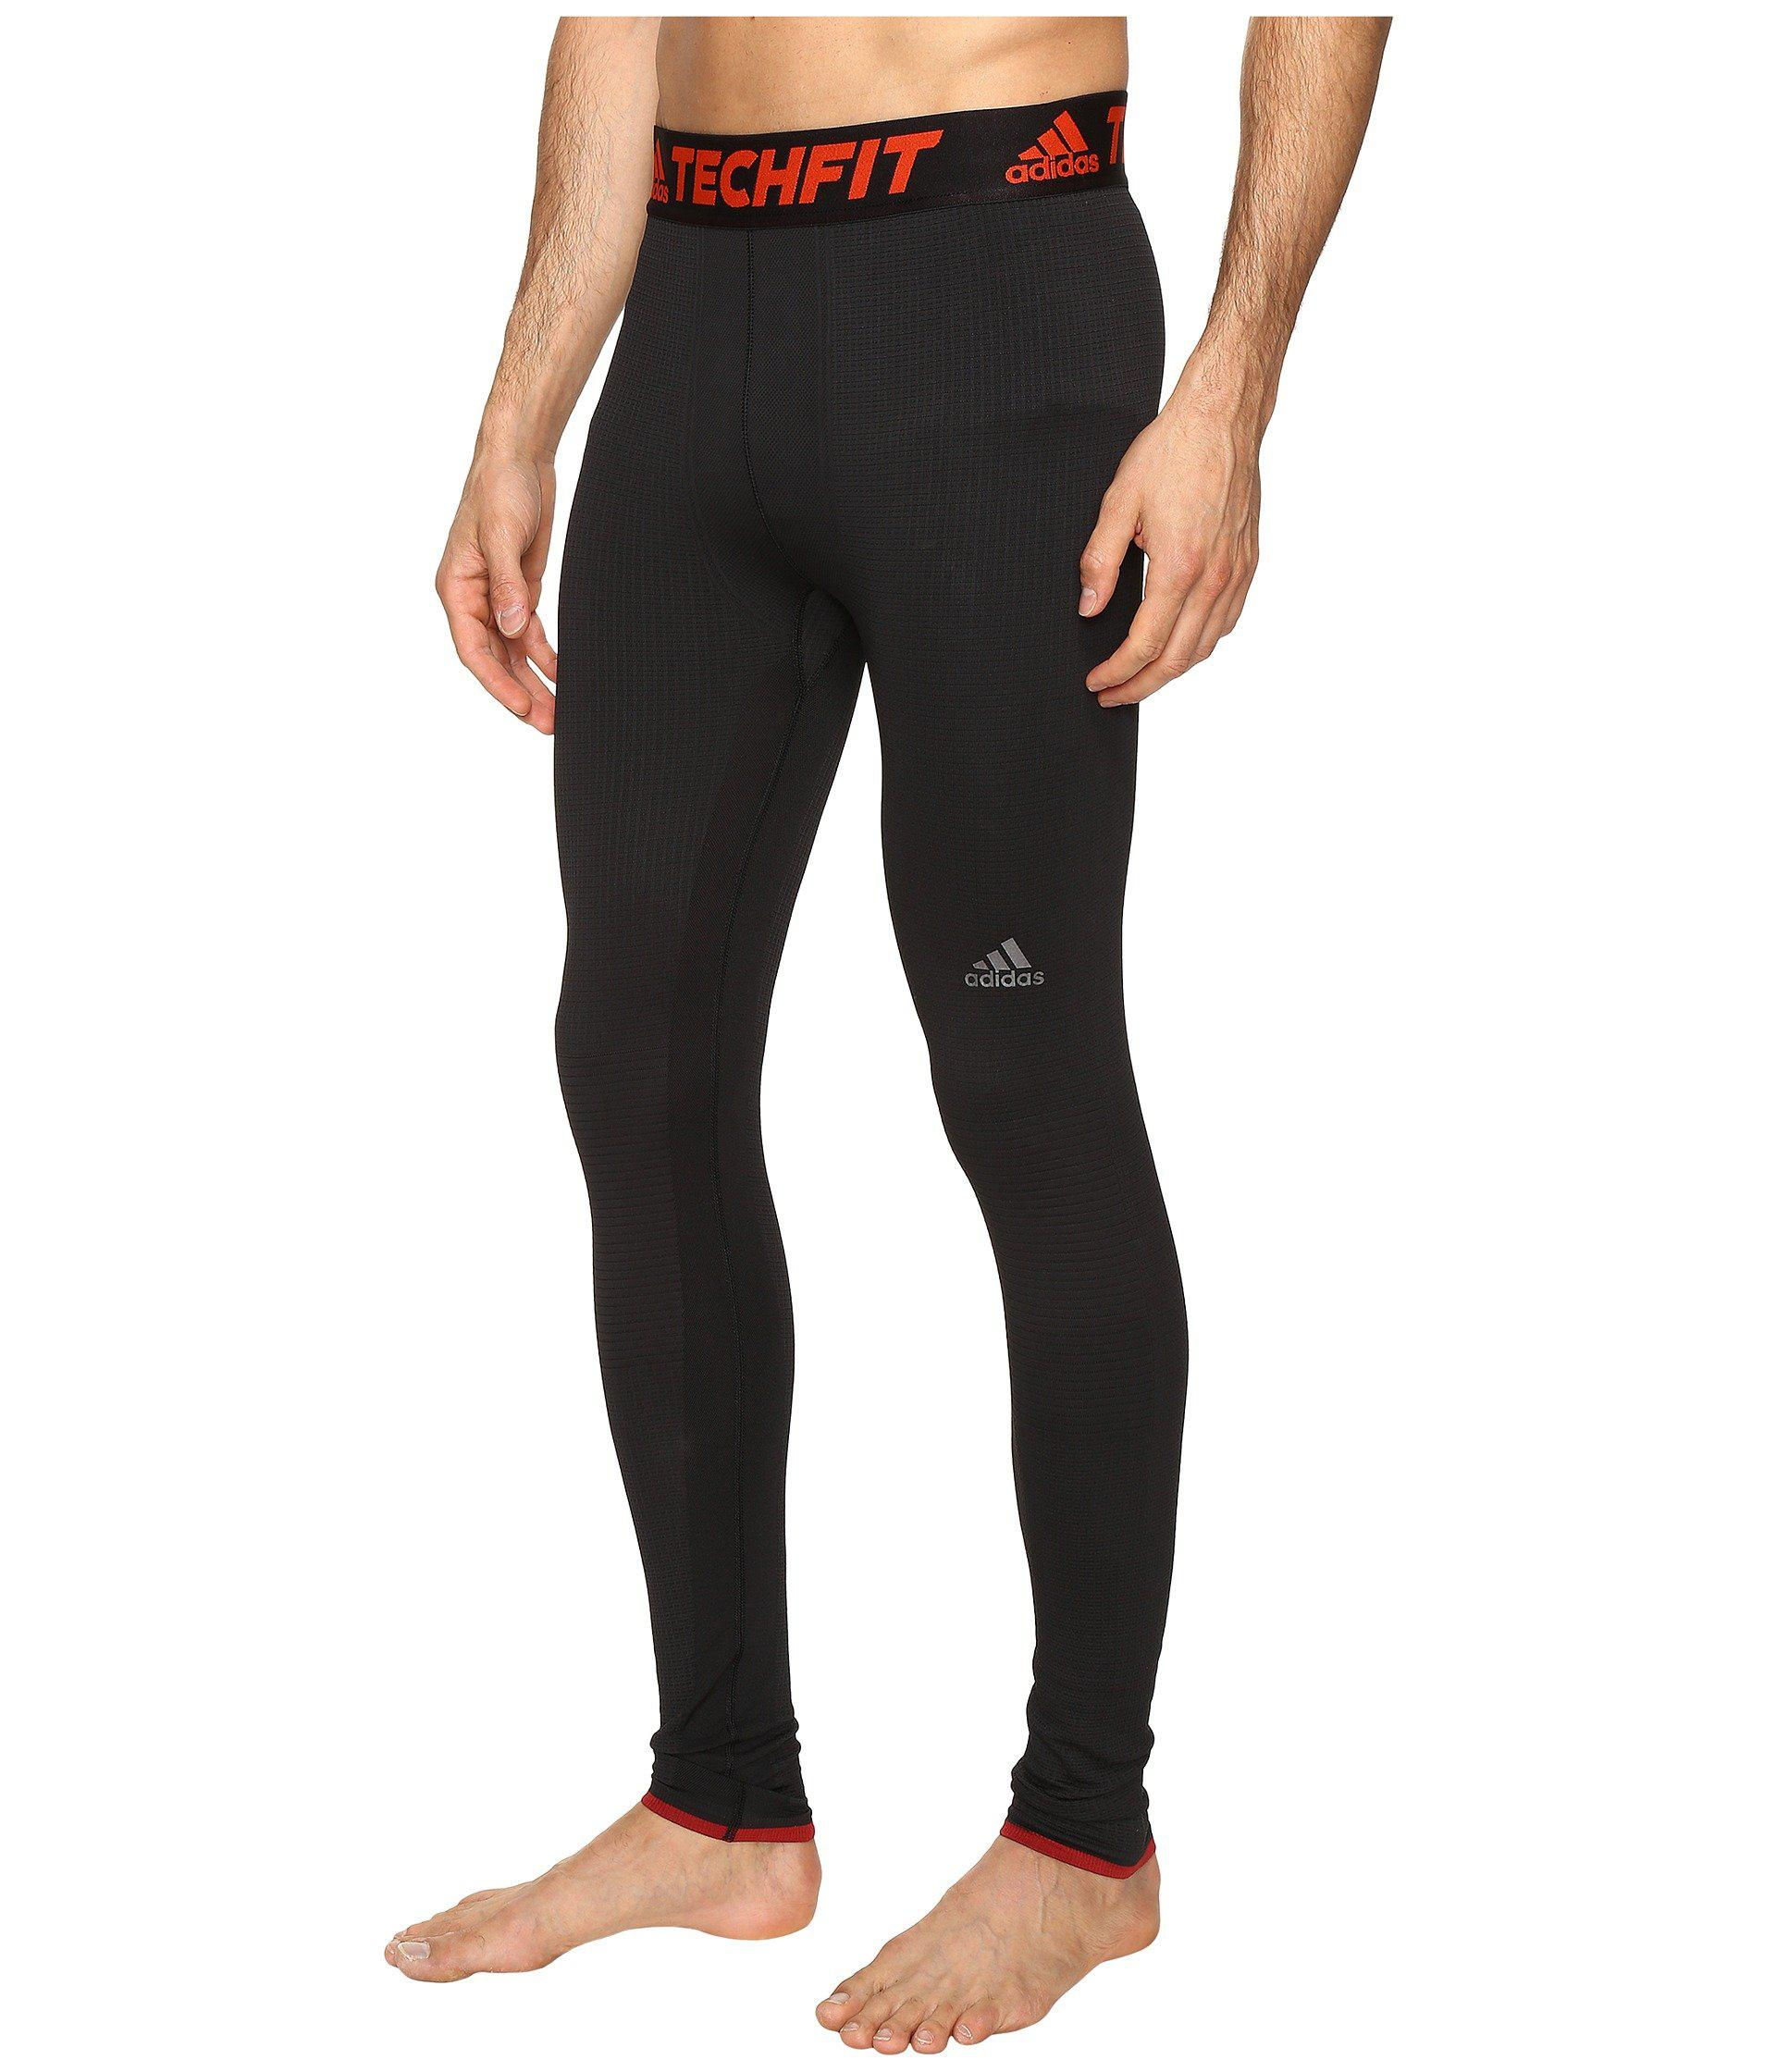 c08c3b886b5c9 adidas Techfit Climaheat® Tights in Black for Men - Lyst